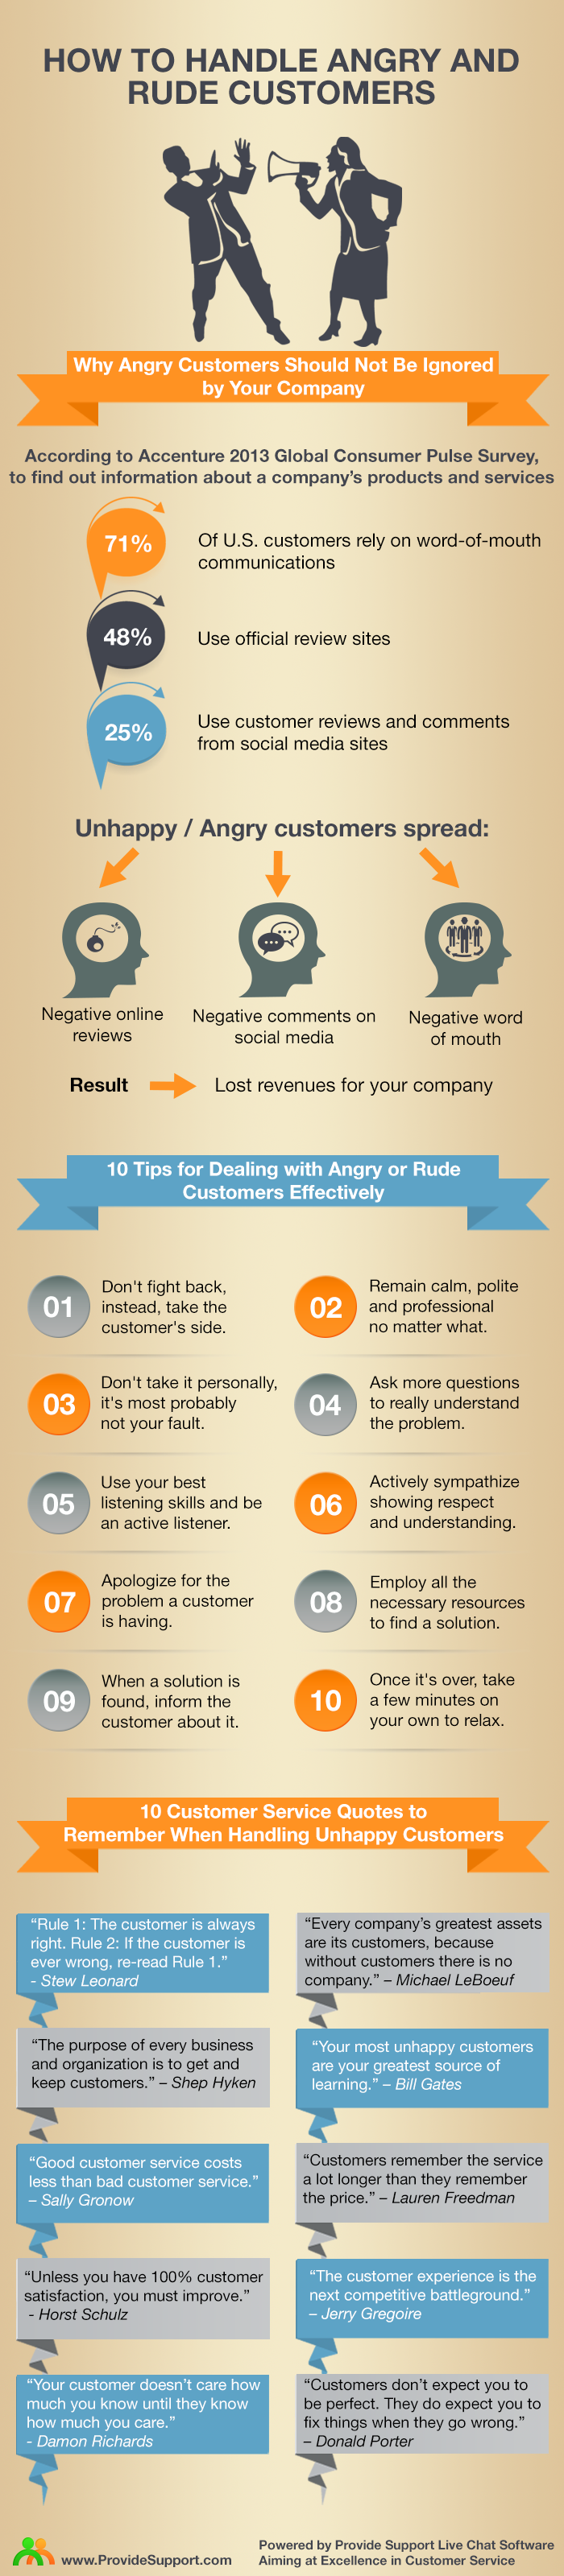 How to Handle Angry Customers [Inforgrafic from Provide Support]